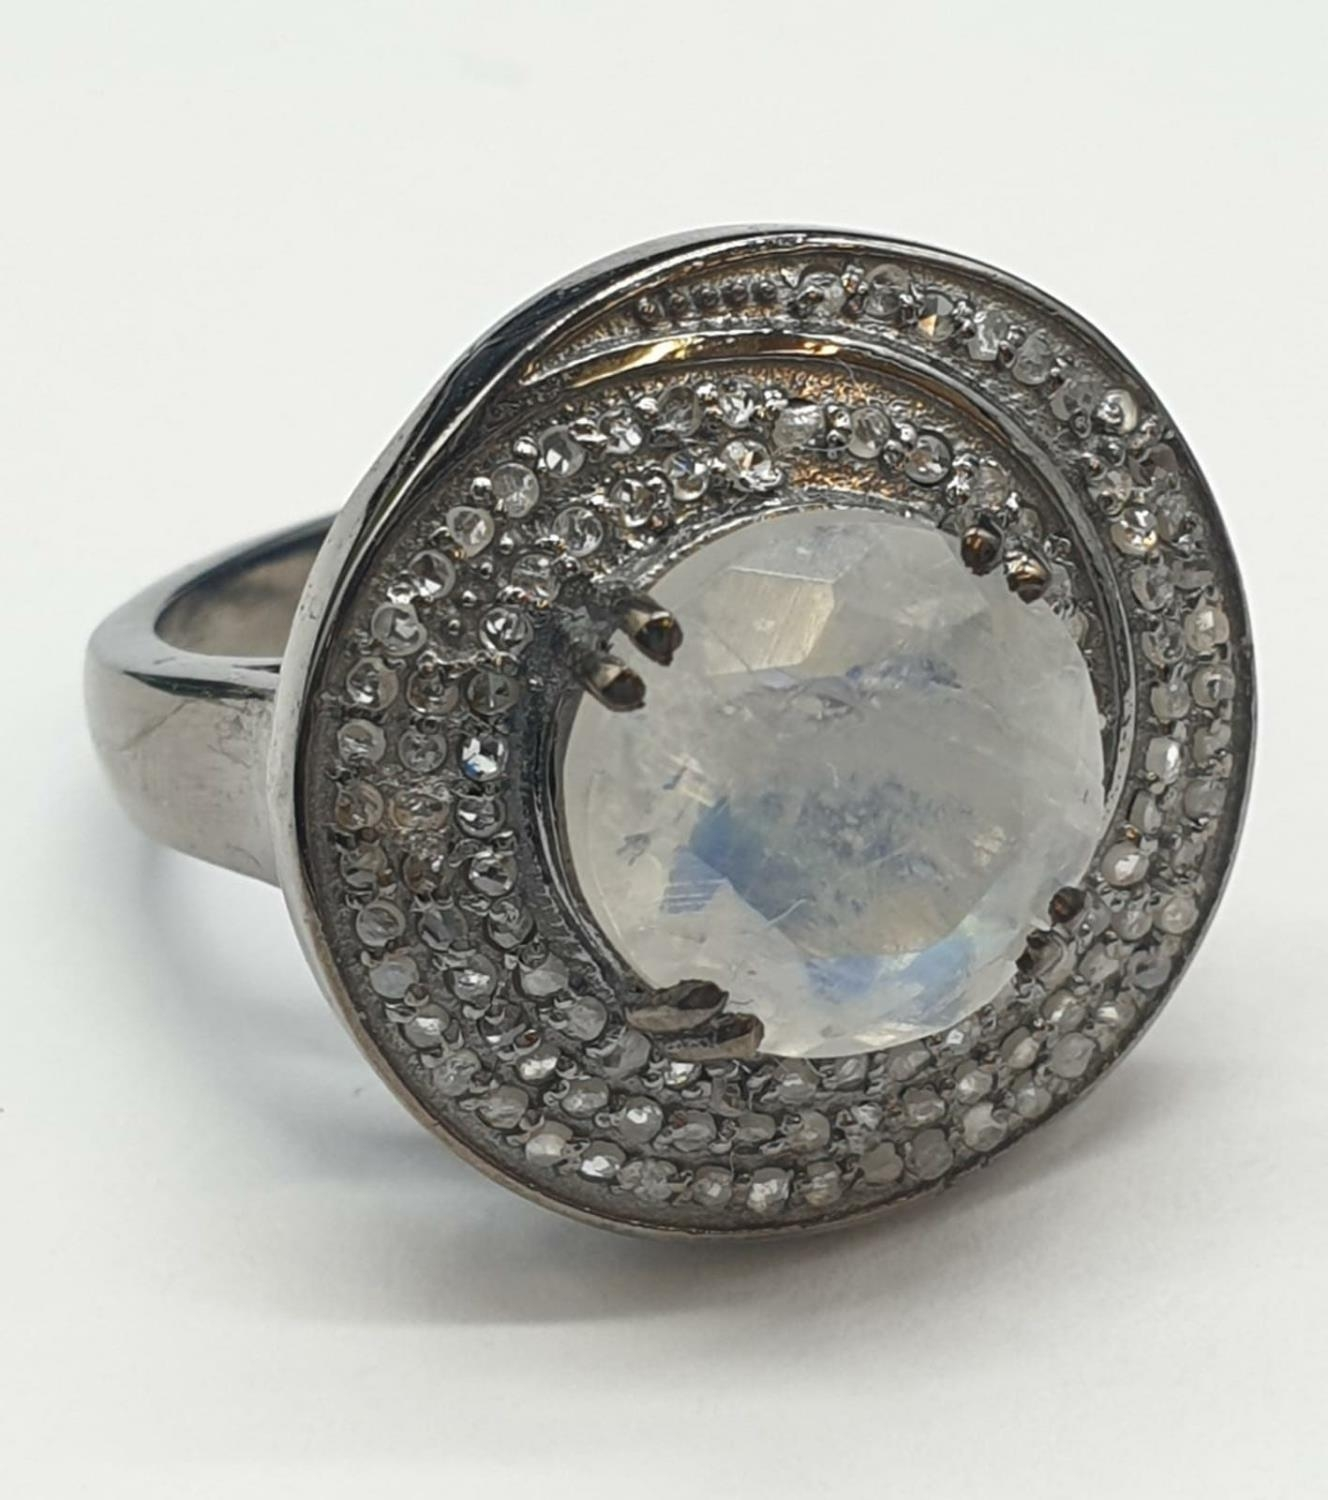 4 Ct Moonstone Ring with 0.75 Ct Rose cut diamonds. Blackened silver.